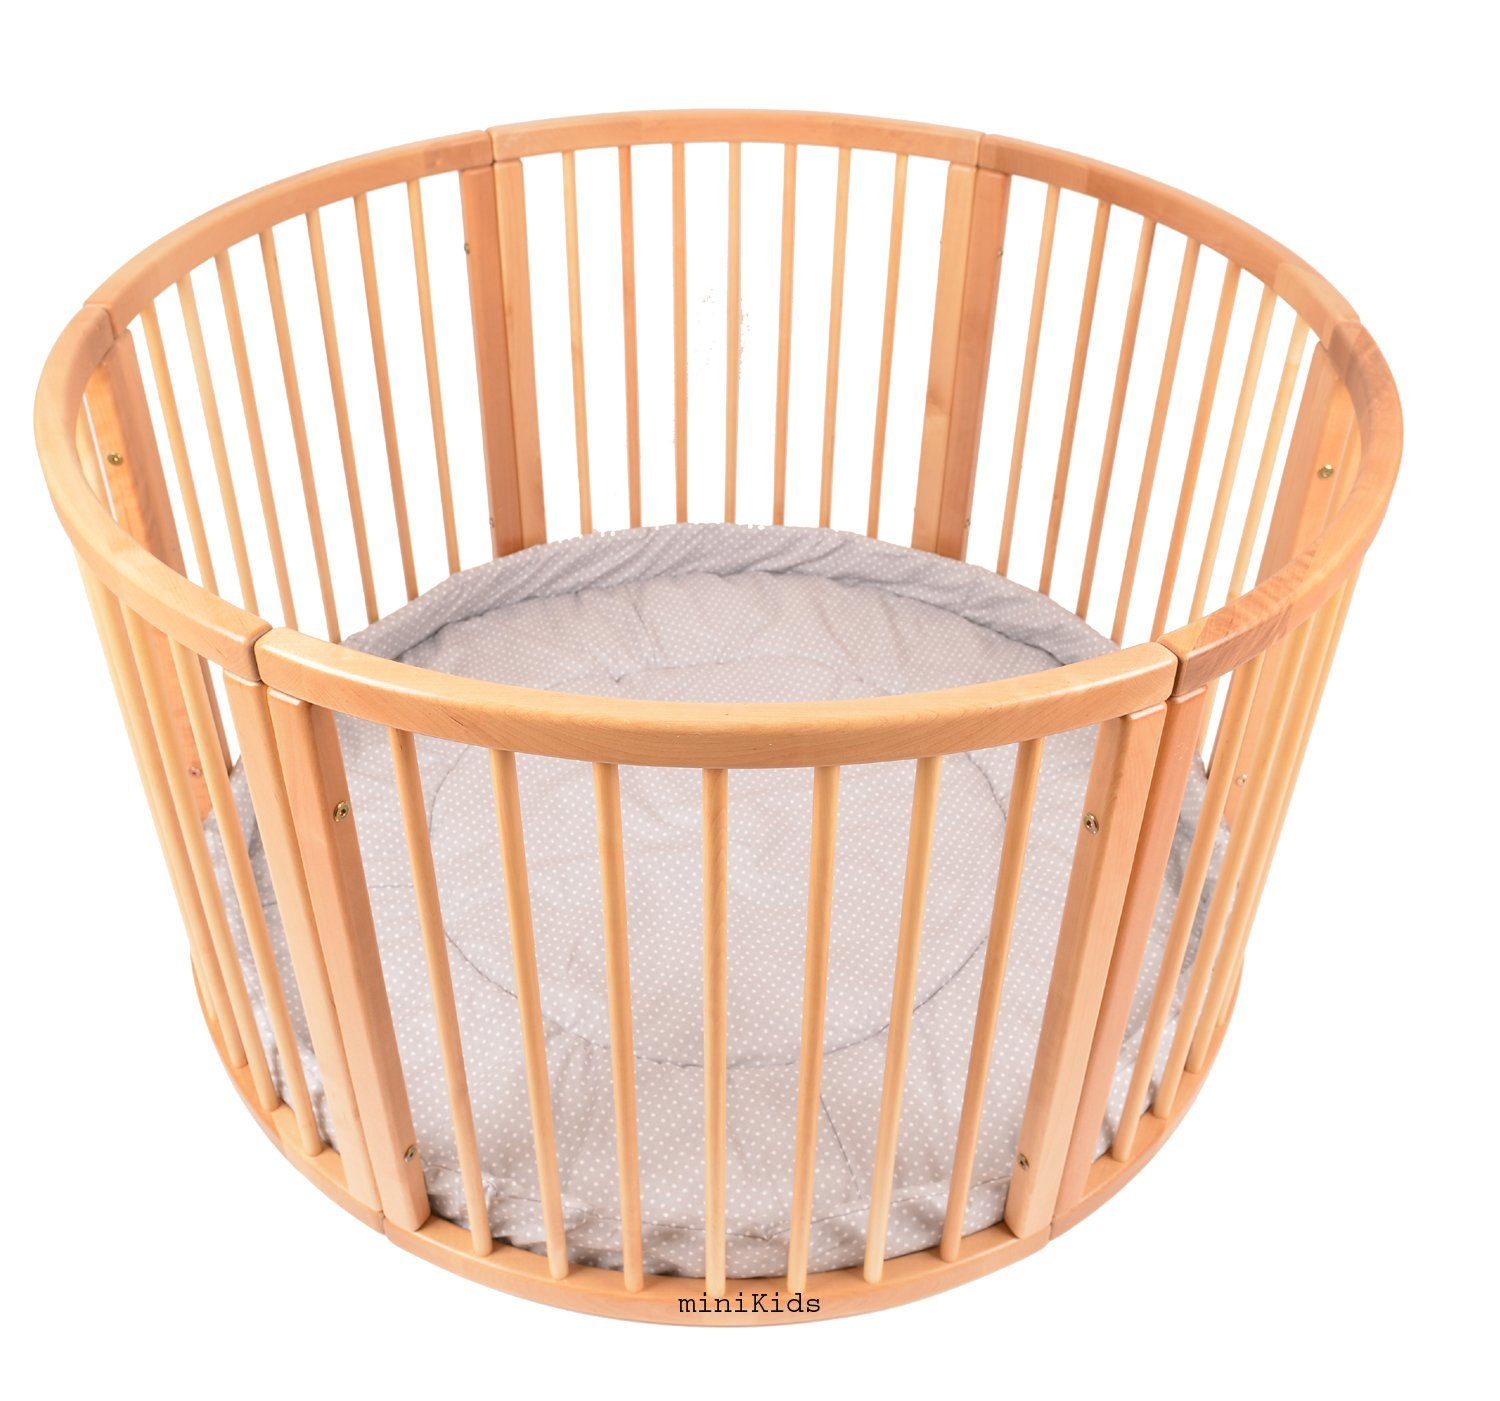 Brand NEW VERY LARGE Wooden PLAYPEN from ALANEL ALANEL Height 70 cm approx; Ø 120cm MADE IN EUROPE including Playmat 1